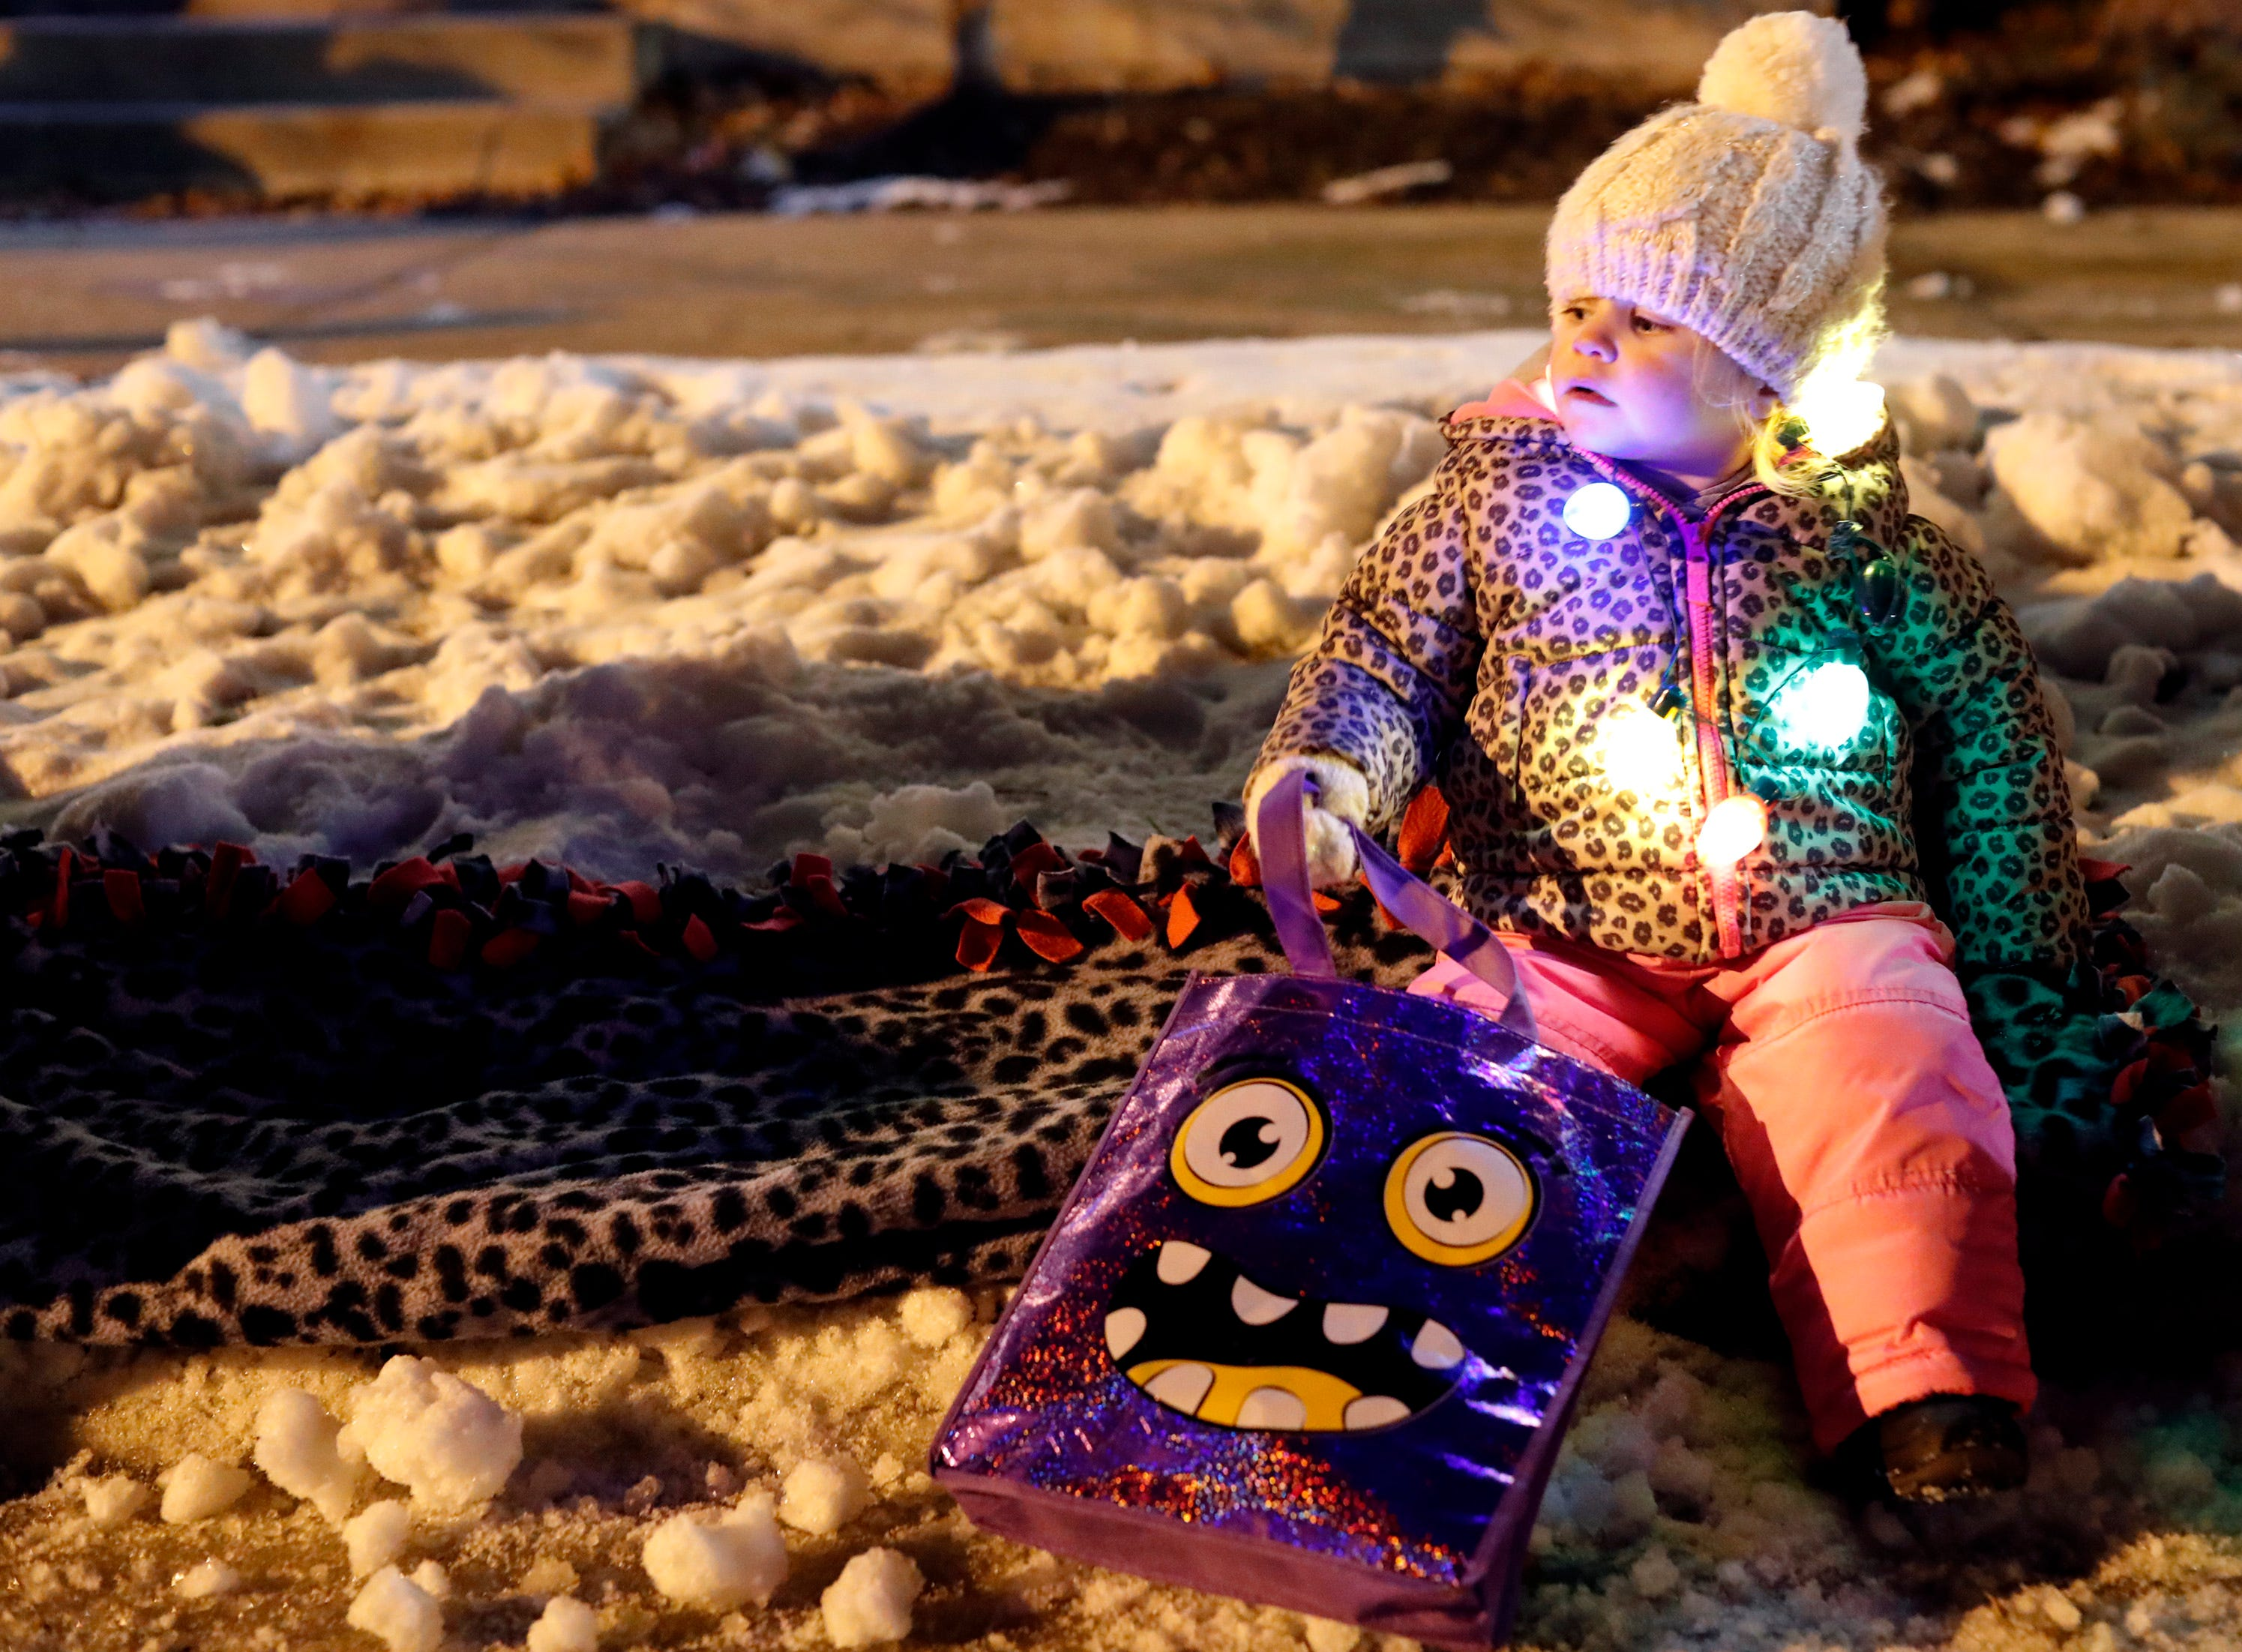 Lainey Weyenberg, 2, waits for the Electric City Christmas Parade to start Tuesday, Dec. 4, 2018, in Kaukauna, Wis.